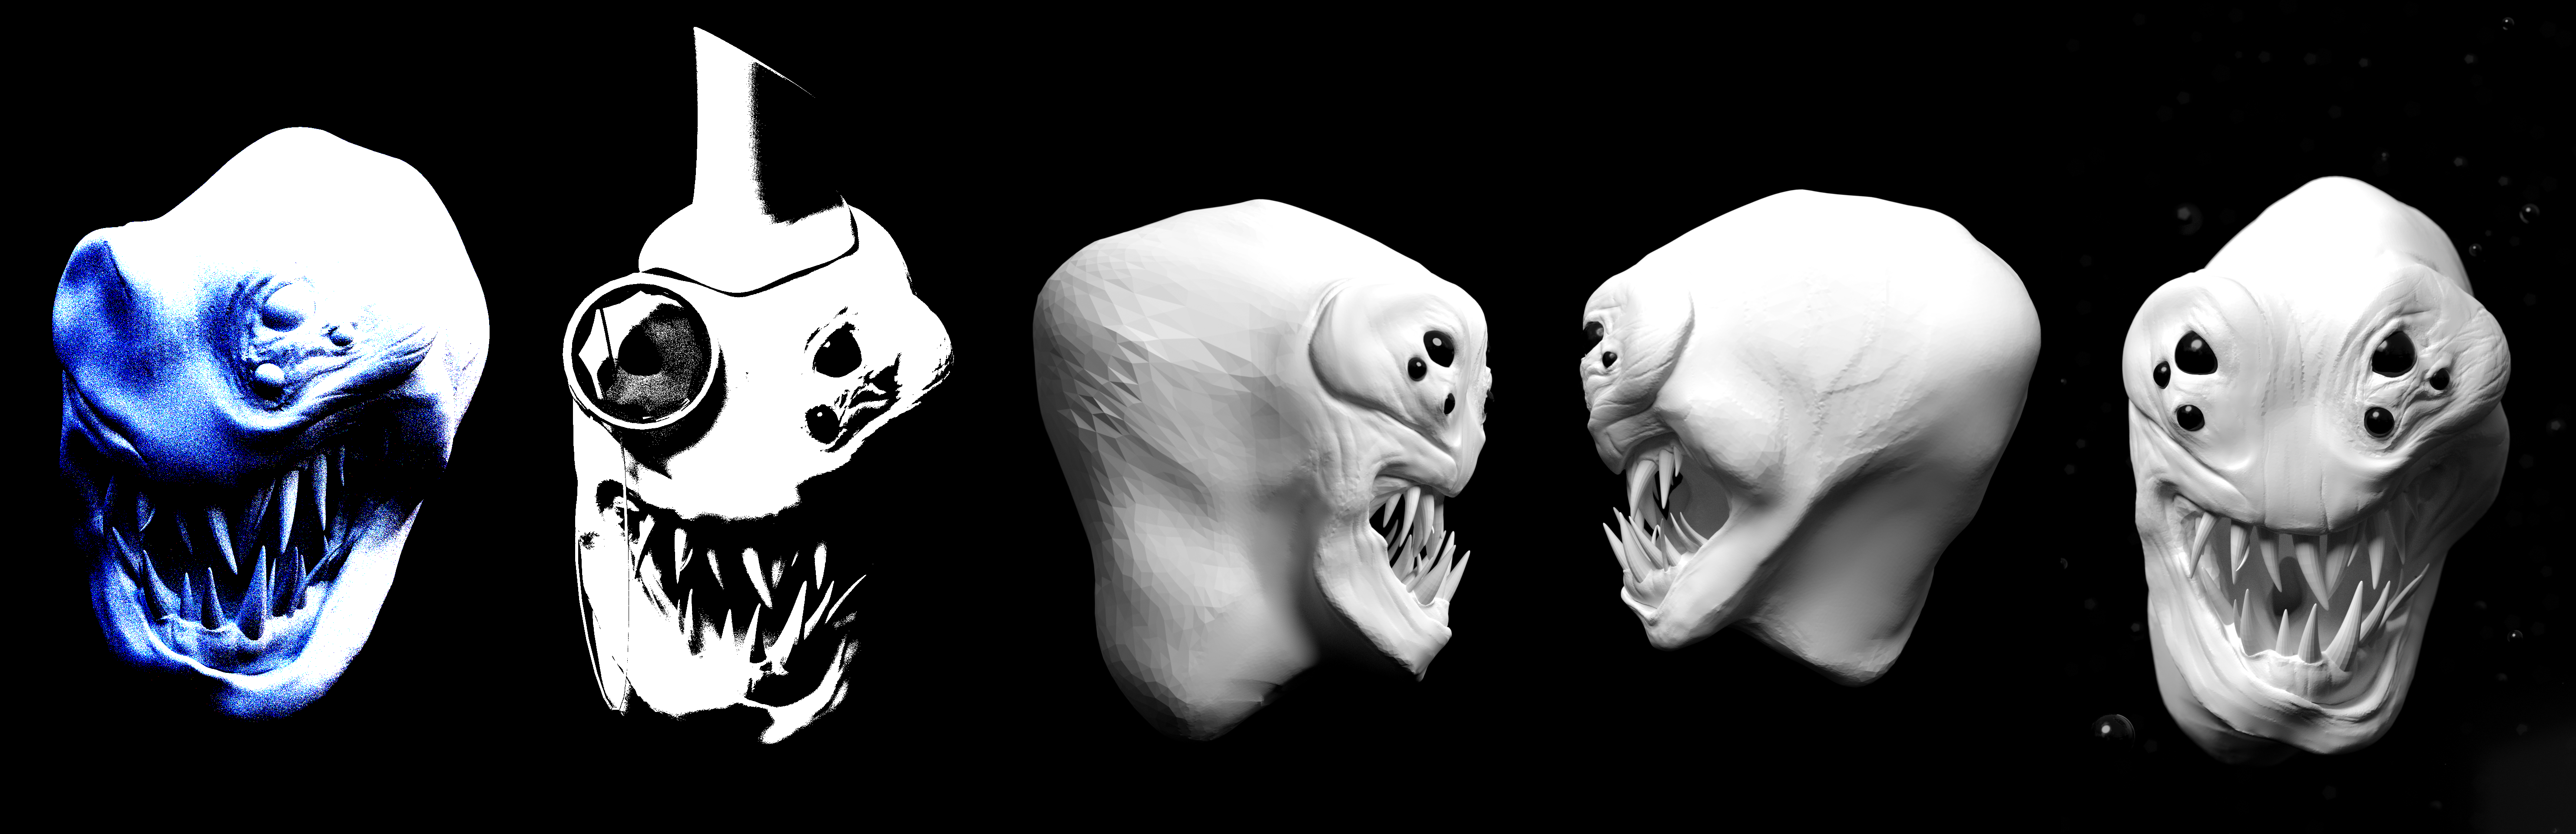 WIP - Creature Sculpt by Shastro